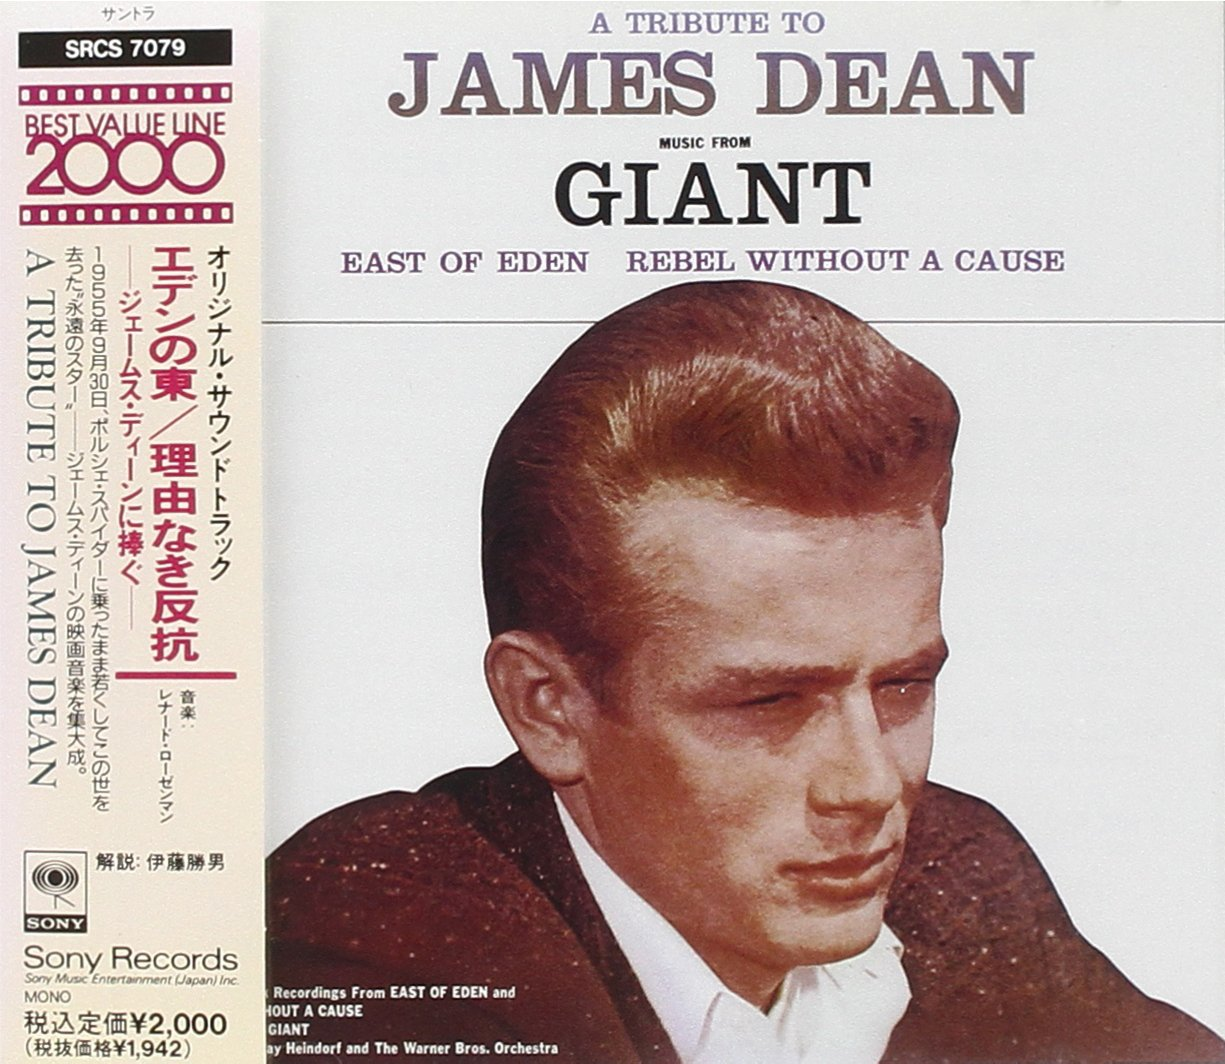 A Tribute to James Dean: Al sold out. Music From Quantity limited and of East Giant Eden Reb